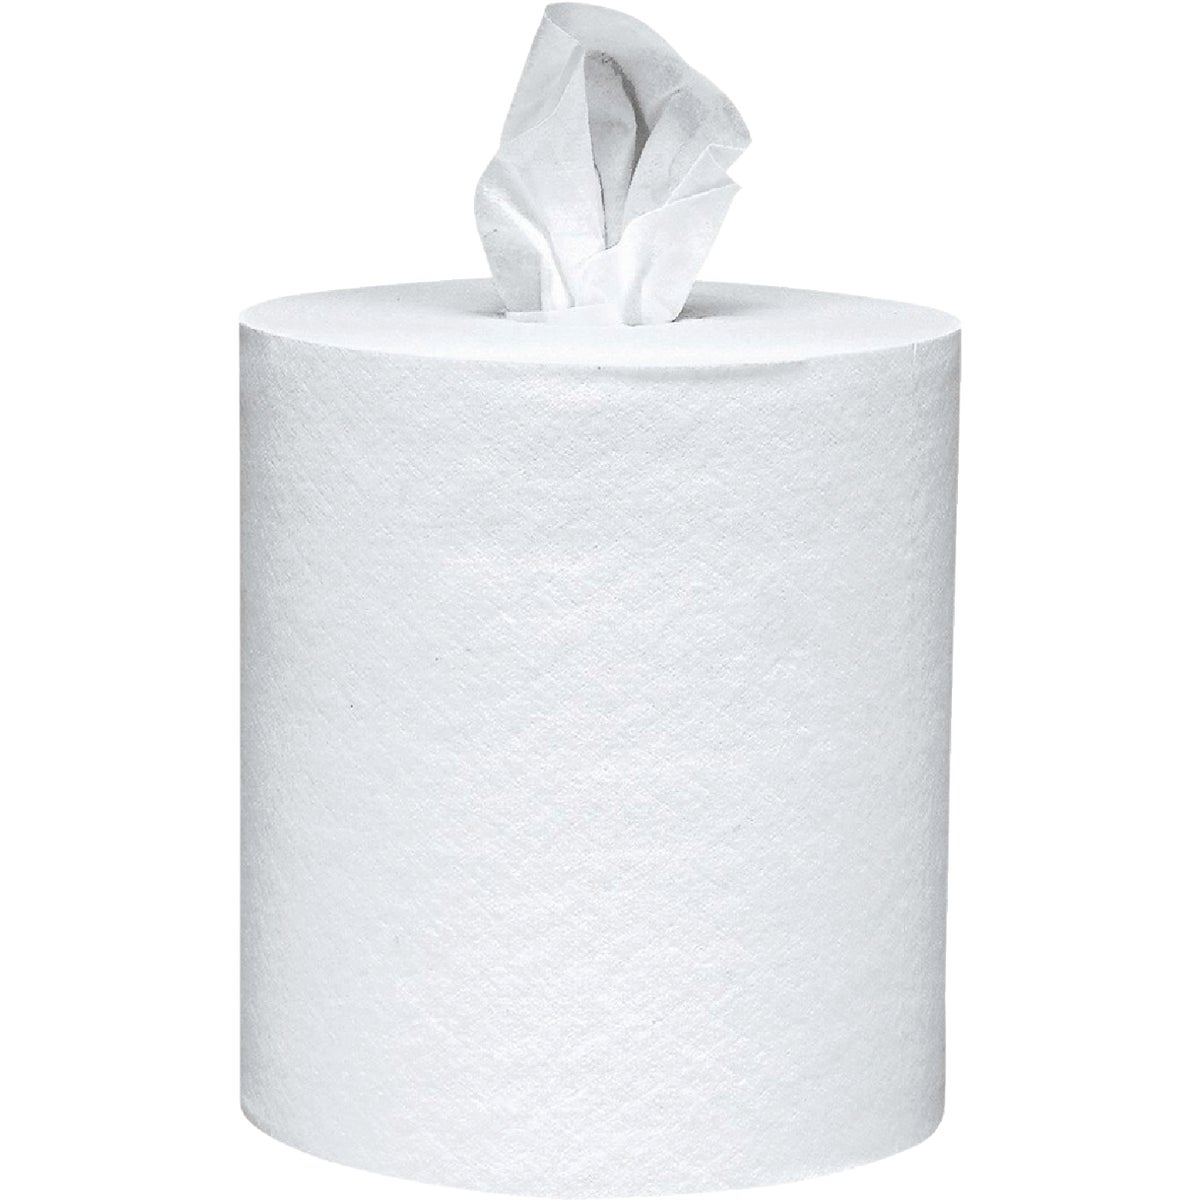 1-Ply Roll Towel